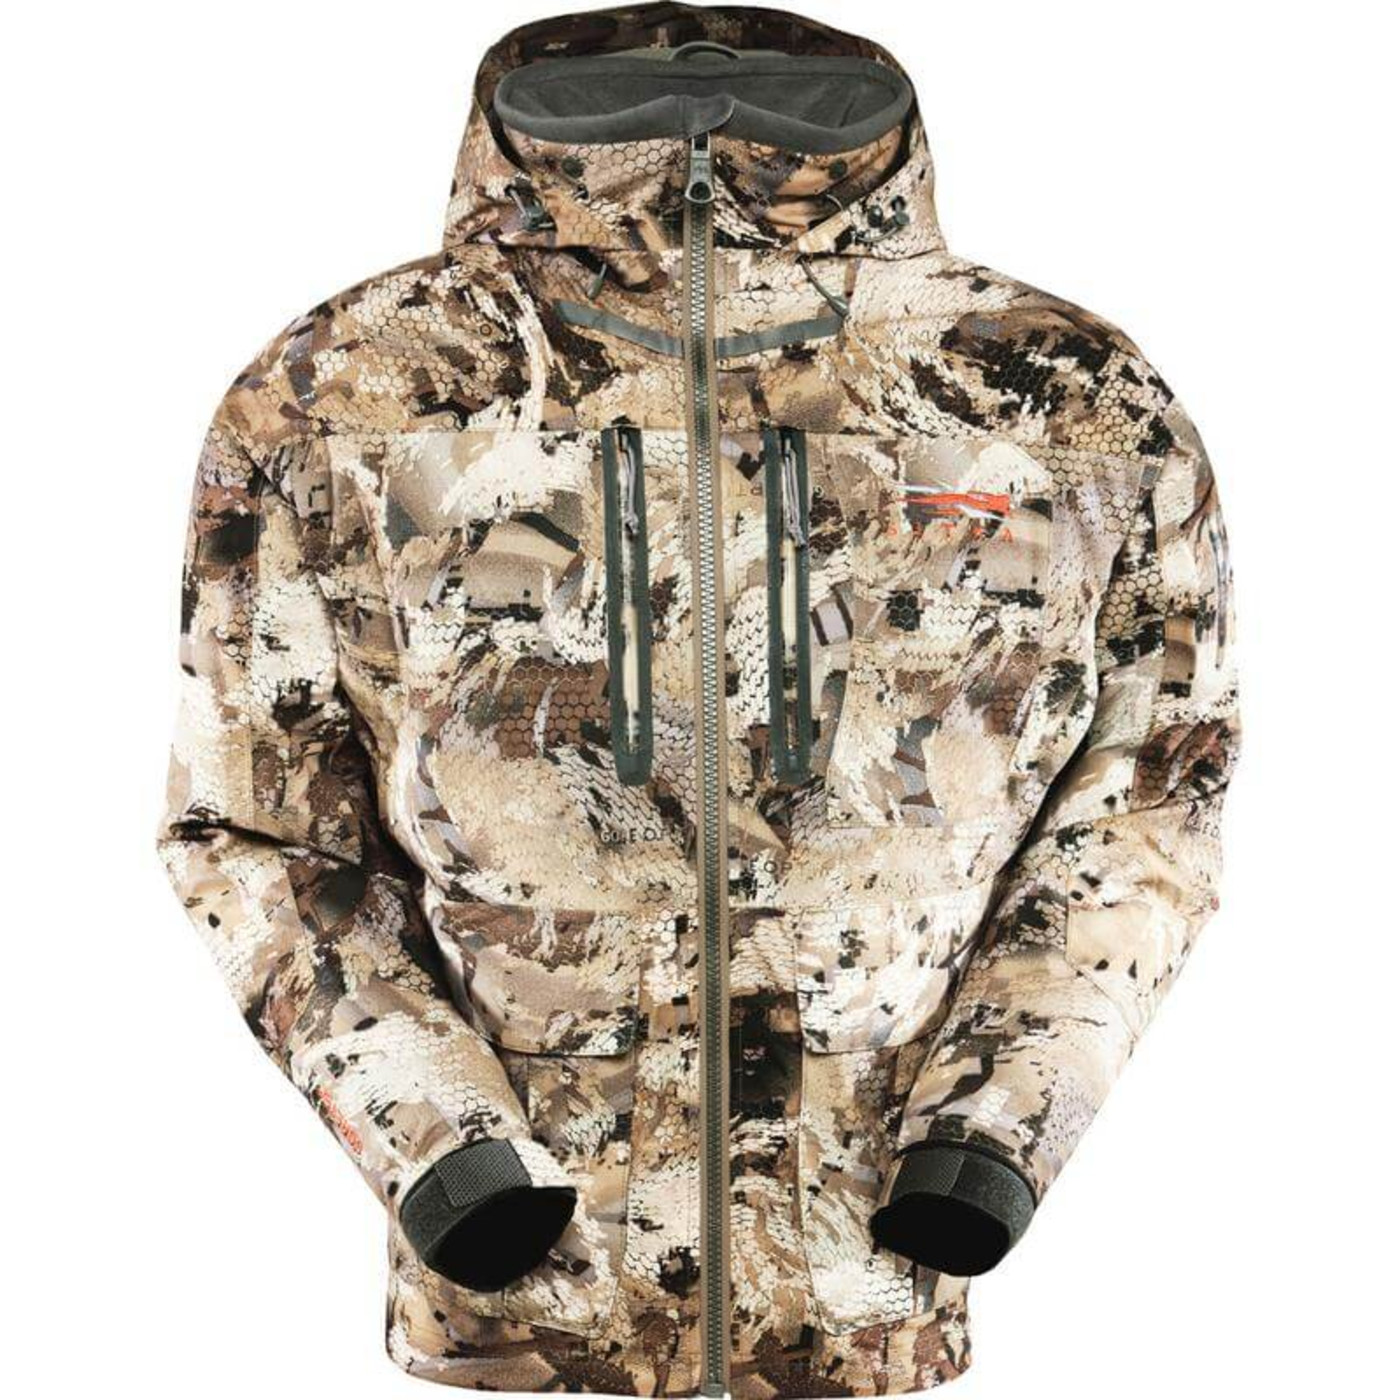 Sitka Boreal Jacket in Waterfowl Marsh Color